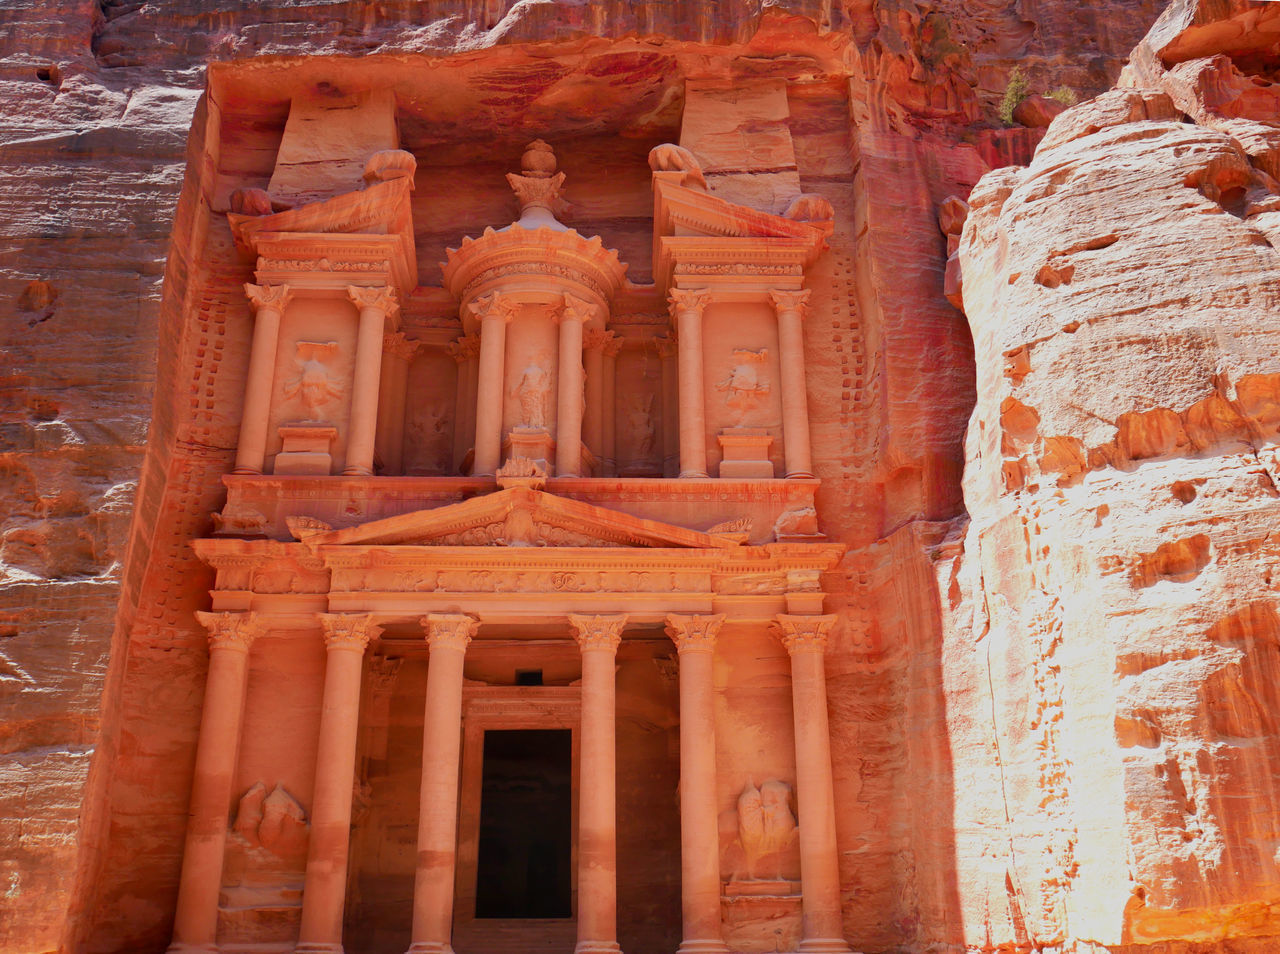 architecture, history, the past, built structure, architectural column, travel destinations, building exterior, ancient, no people, travel, low angle view, tourism, old, day, art and craft, building, ancient civilization, craft, arch, outdoors, ancient history, archaeology, place of worship, sandstone, carving